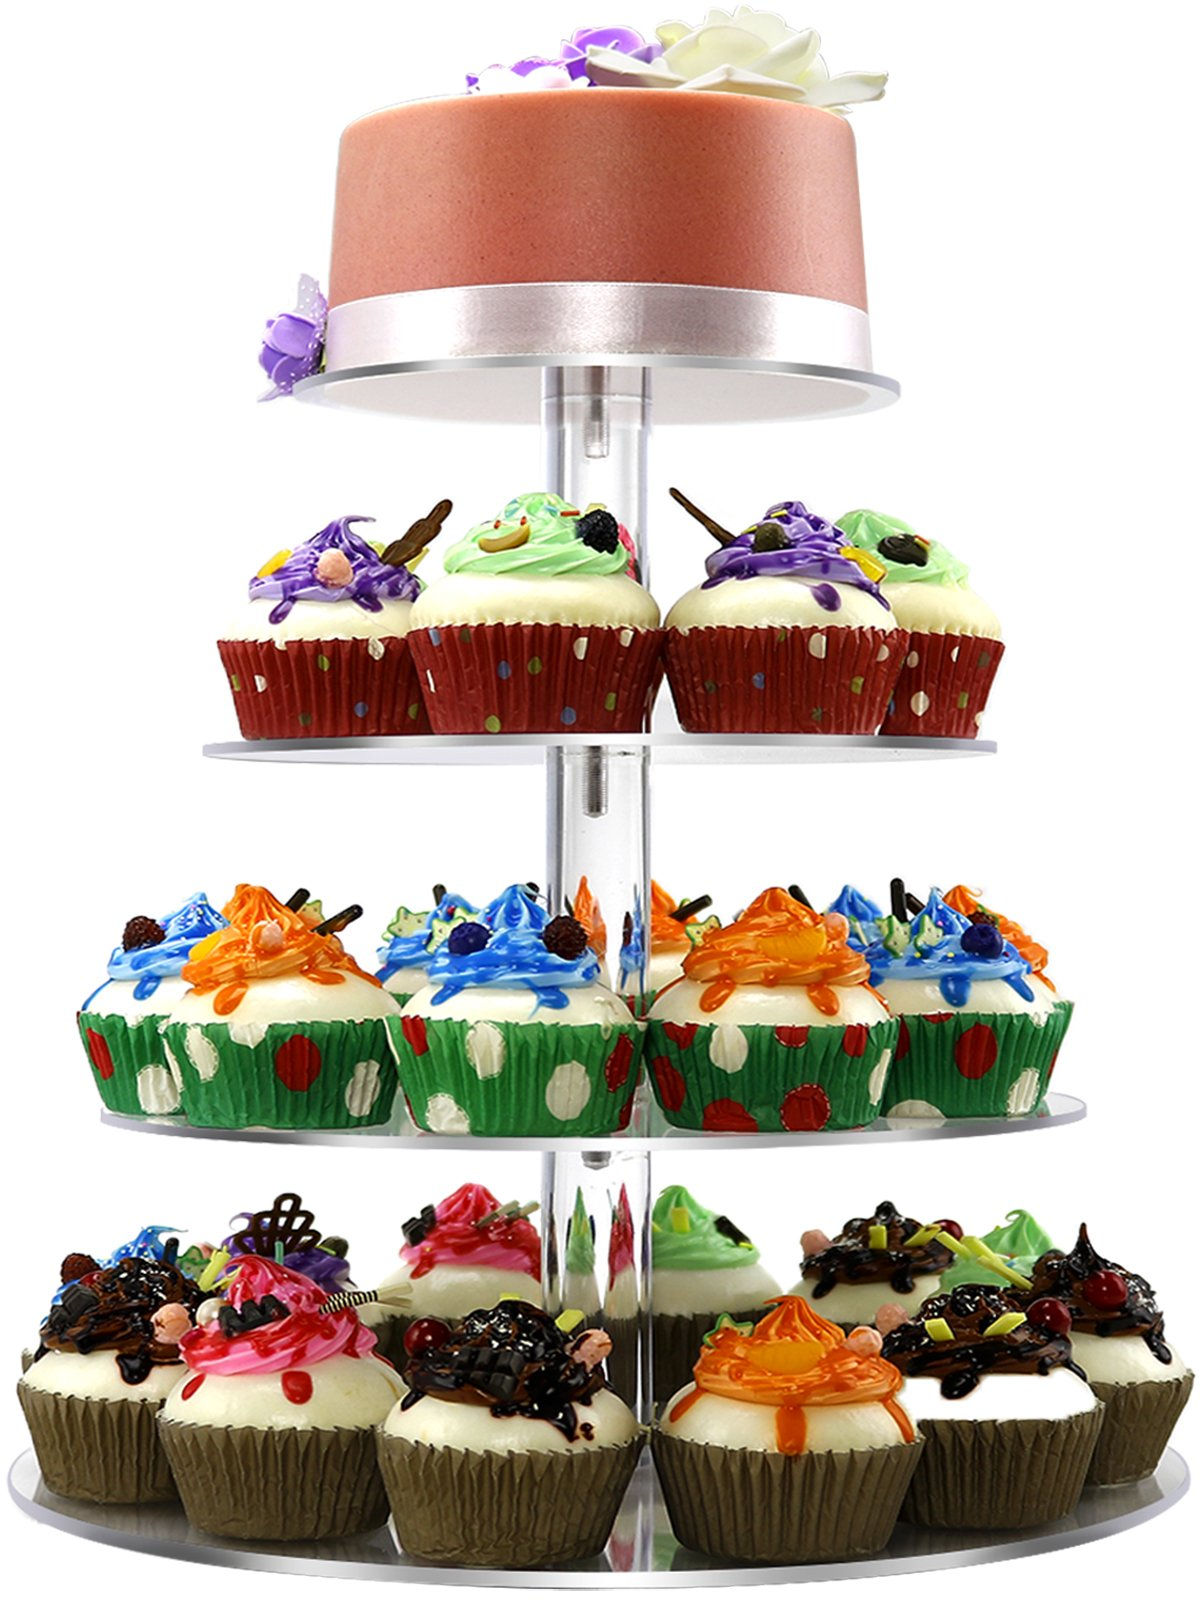 Cupcake Stand,4 Tiered Round Clear Acrylic Plastic Cupcake Stands Tower Display Tree for Wedding Birthday Treat Parties - DYCacrlic